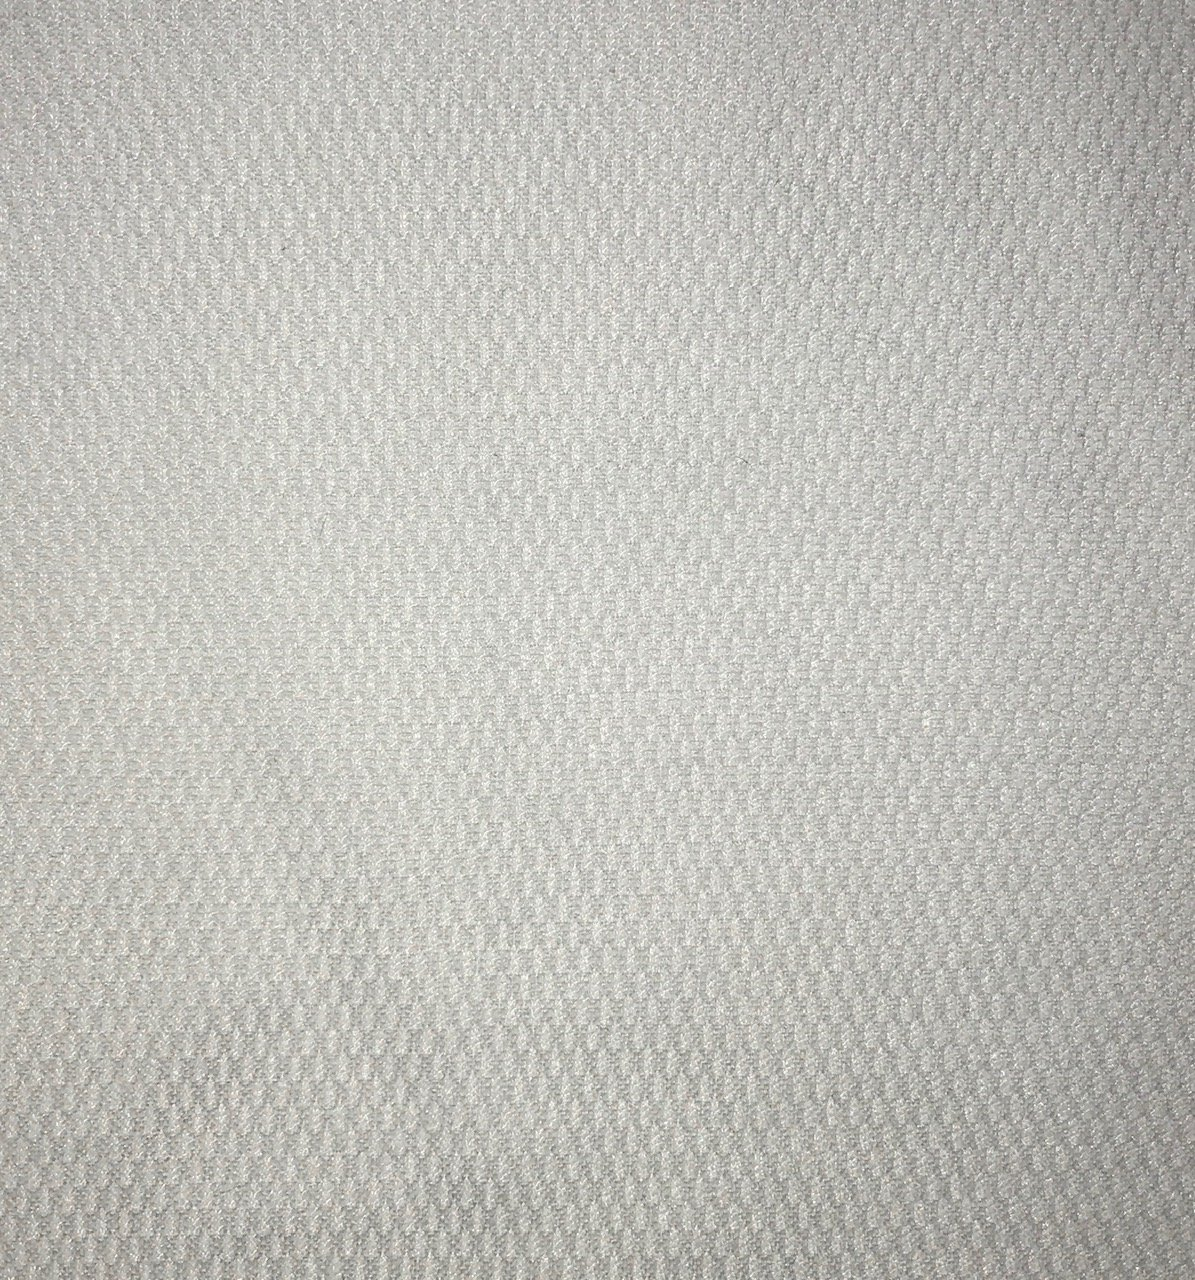 Wicking Mesh - White